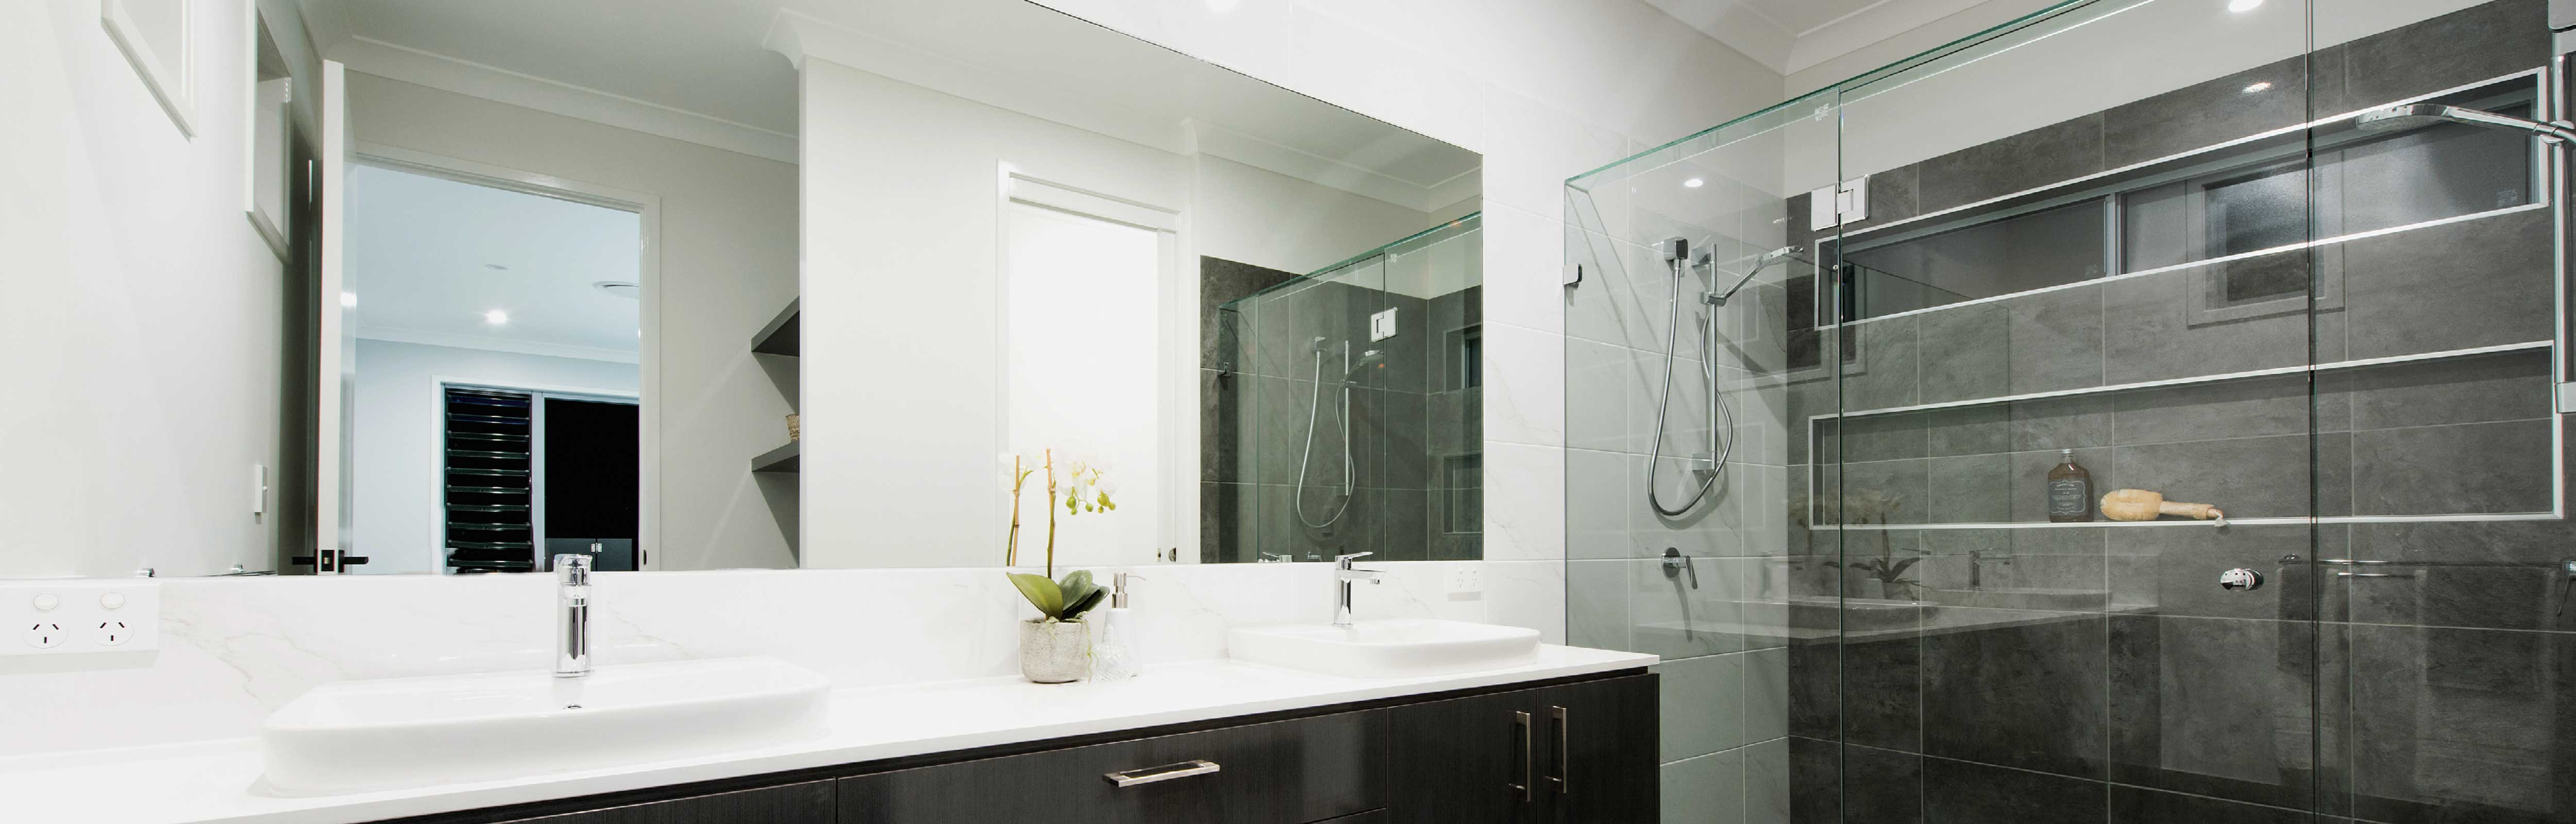 Large Frameless Mirror in a bathroom